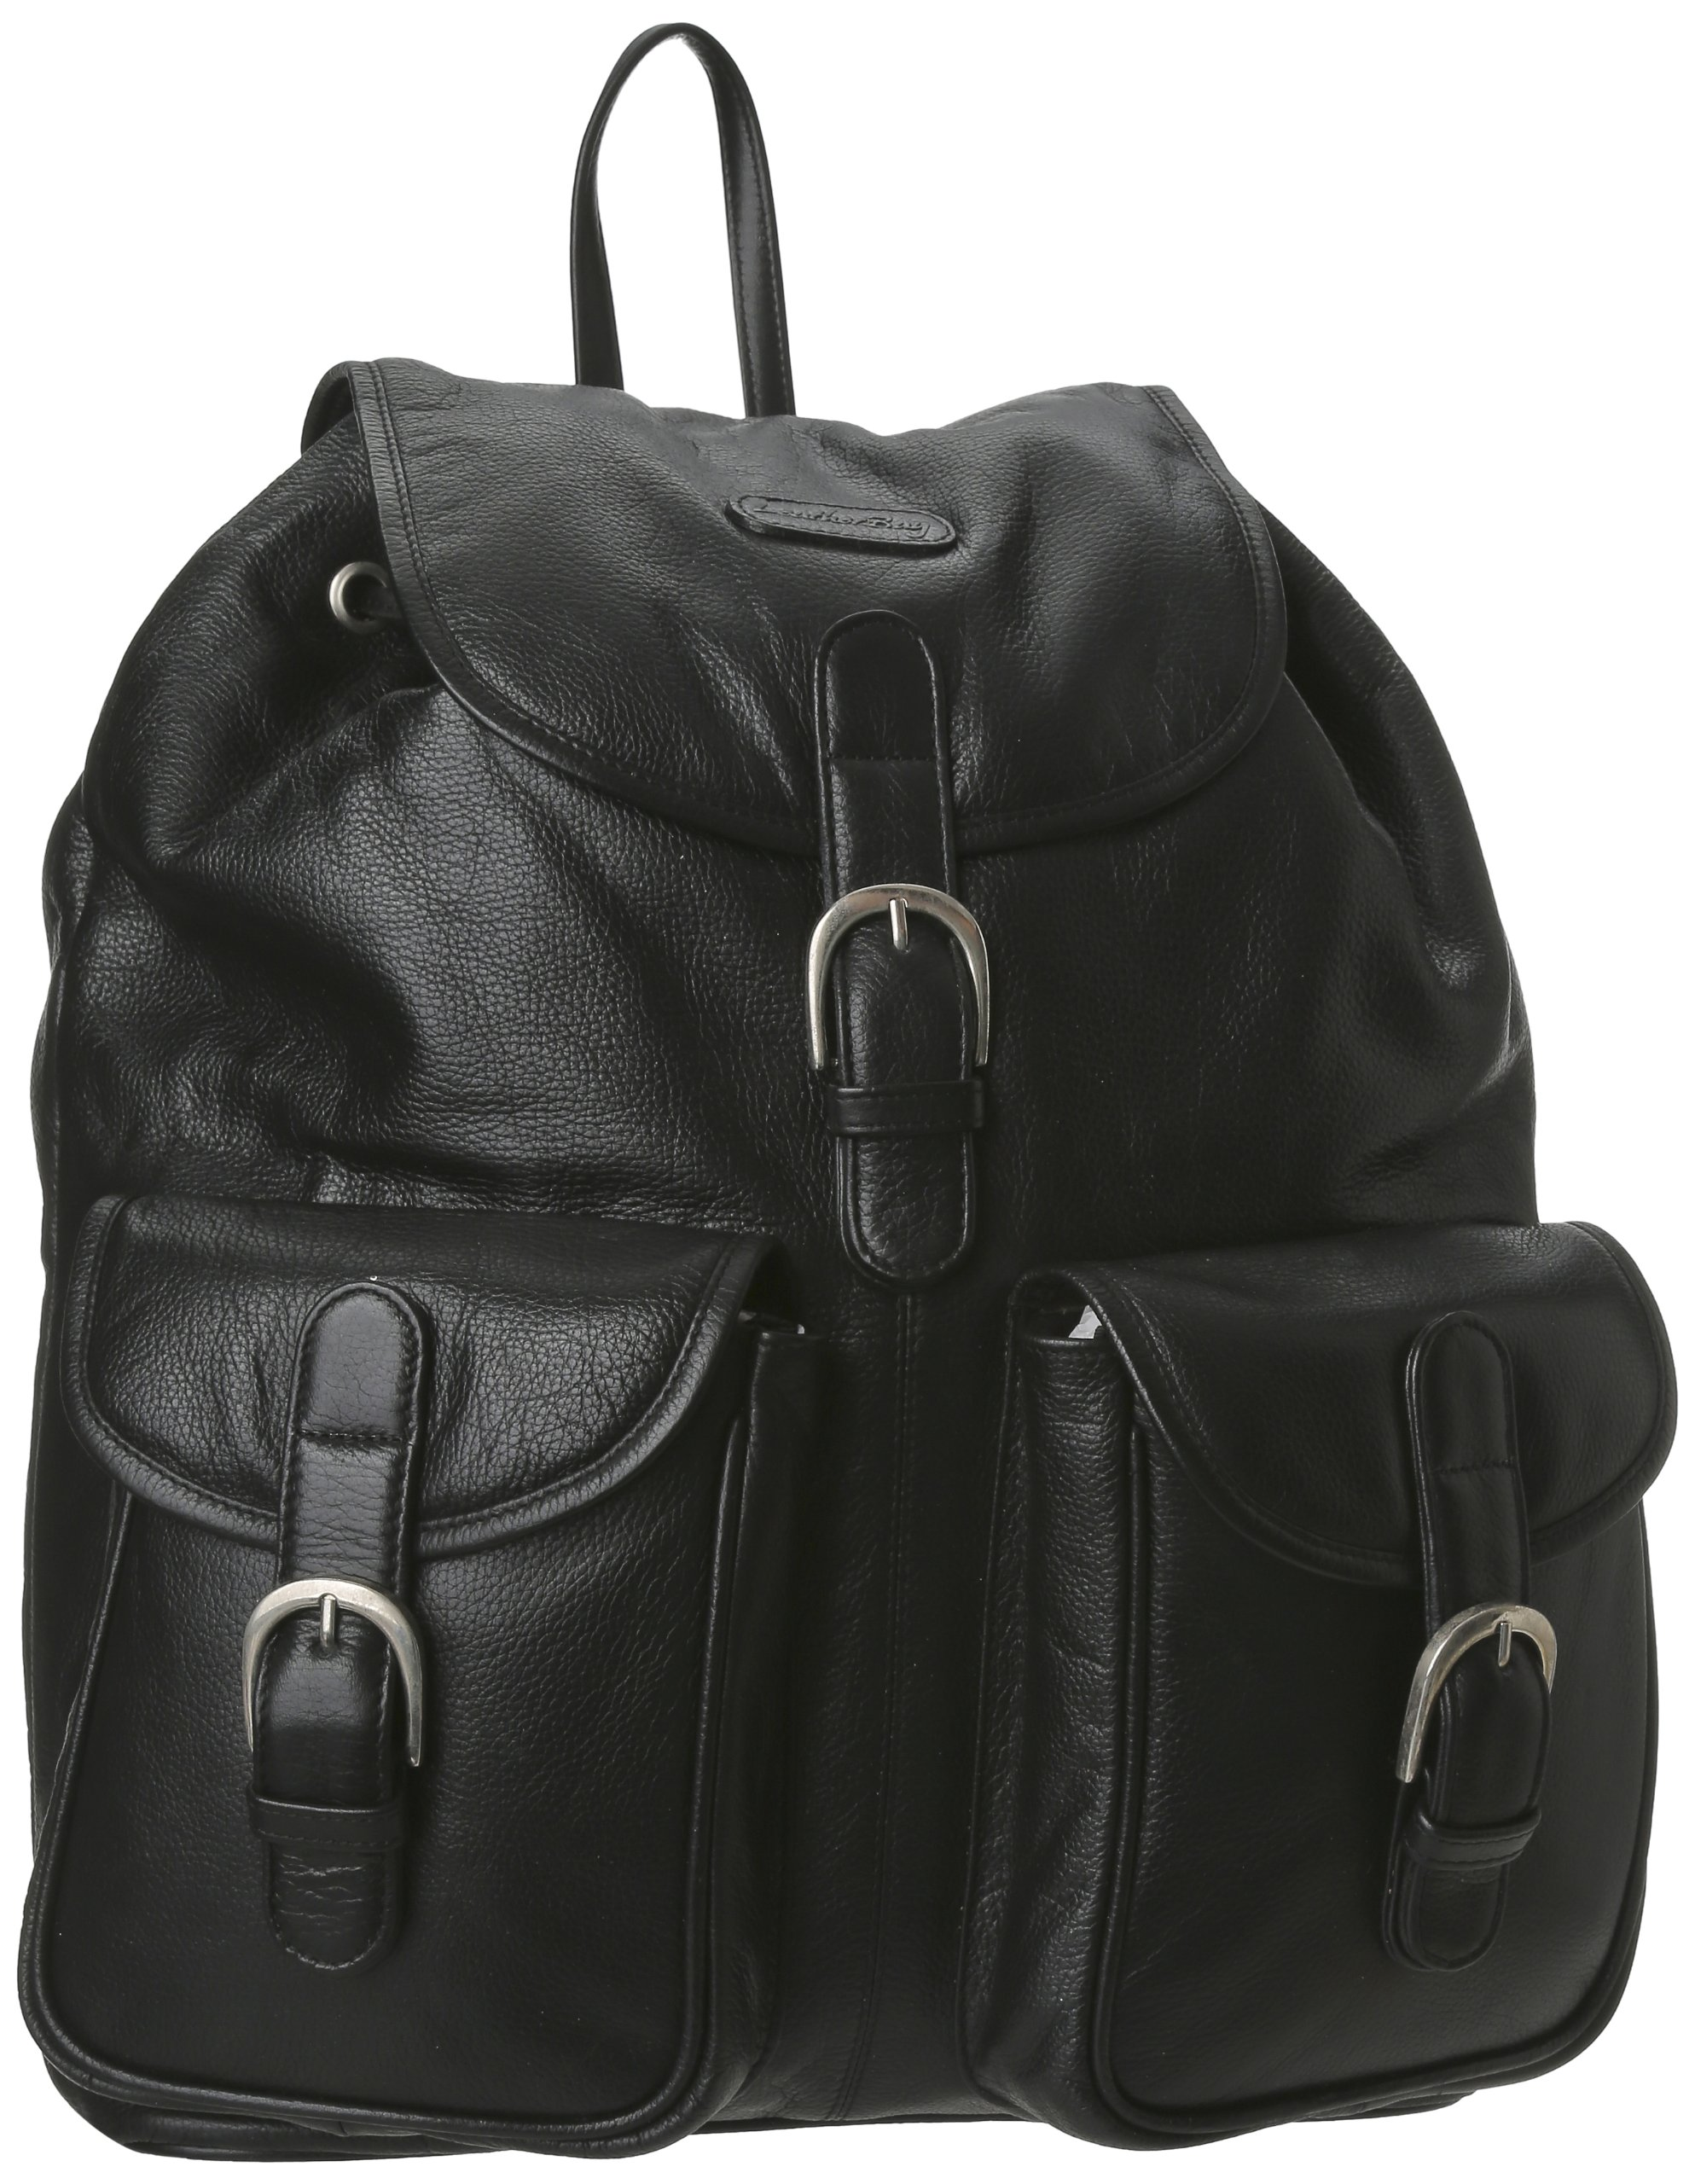 Leatherbay Leather Backpack with Pockets,Black,one size by Leatherbay